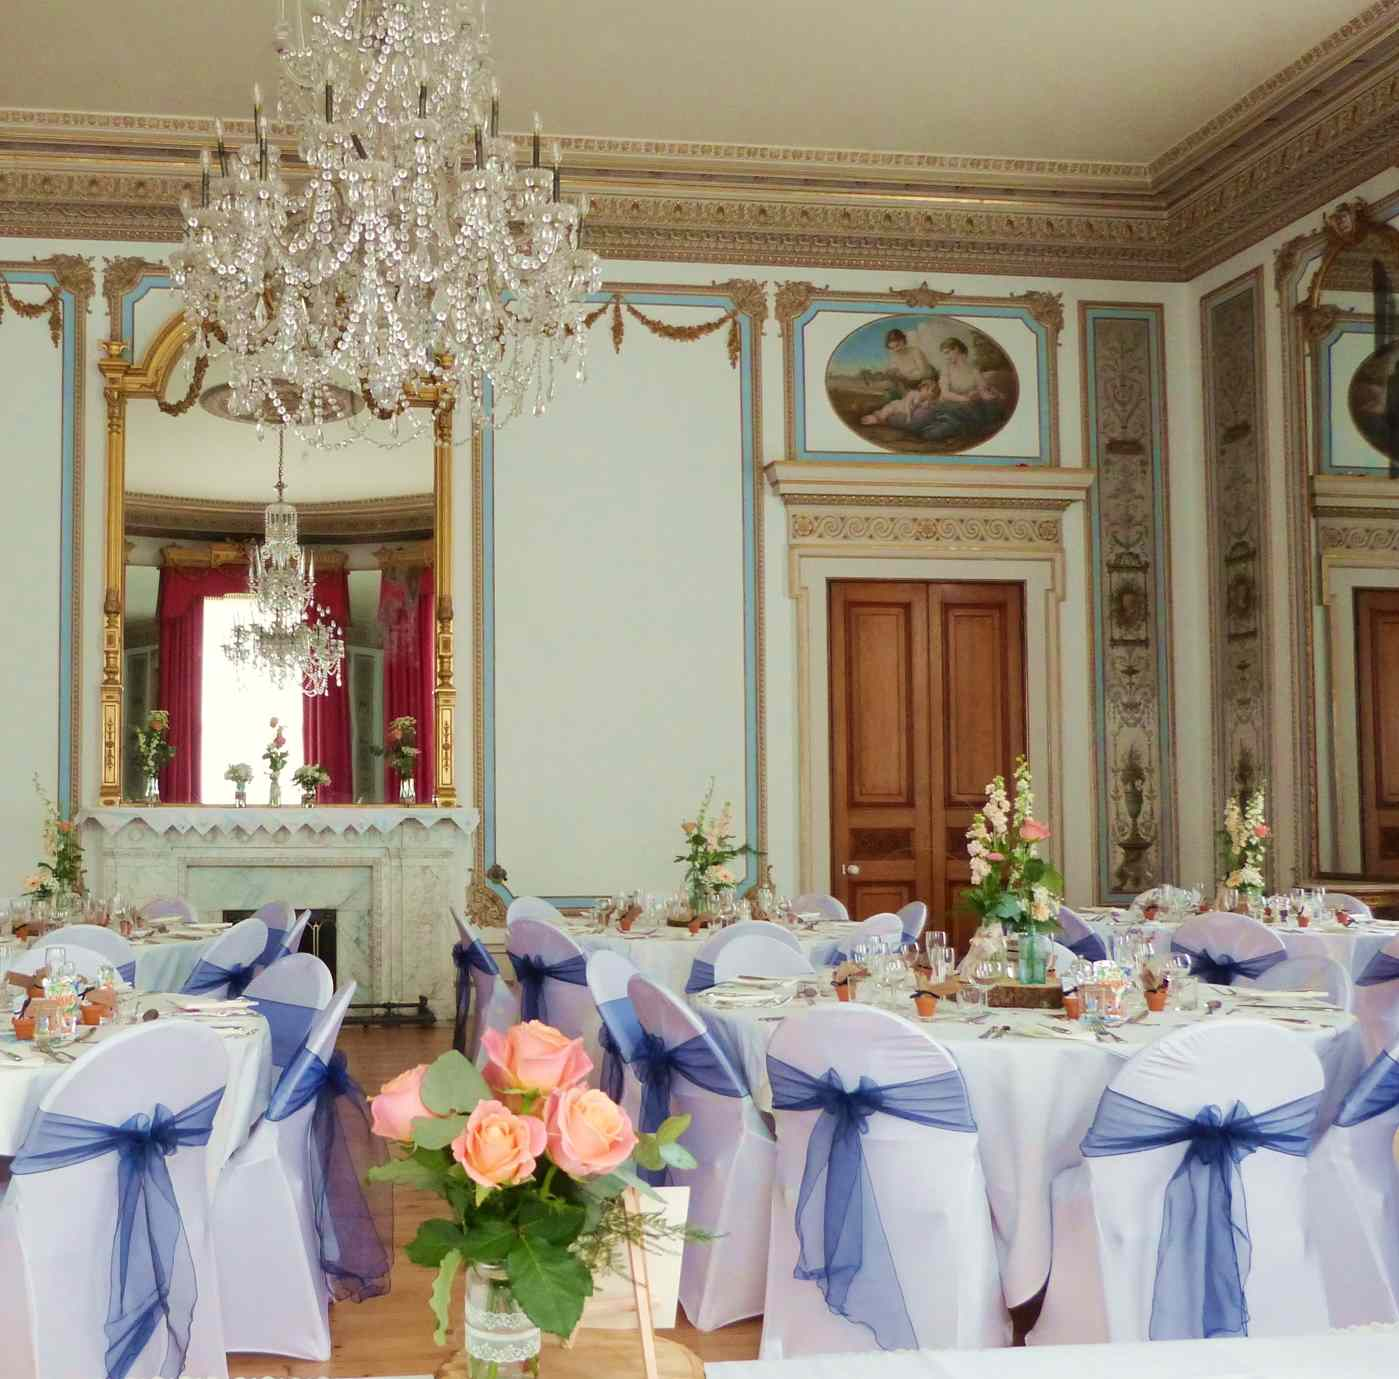 The Adam style Drawing room set for the wedding breakfast